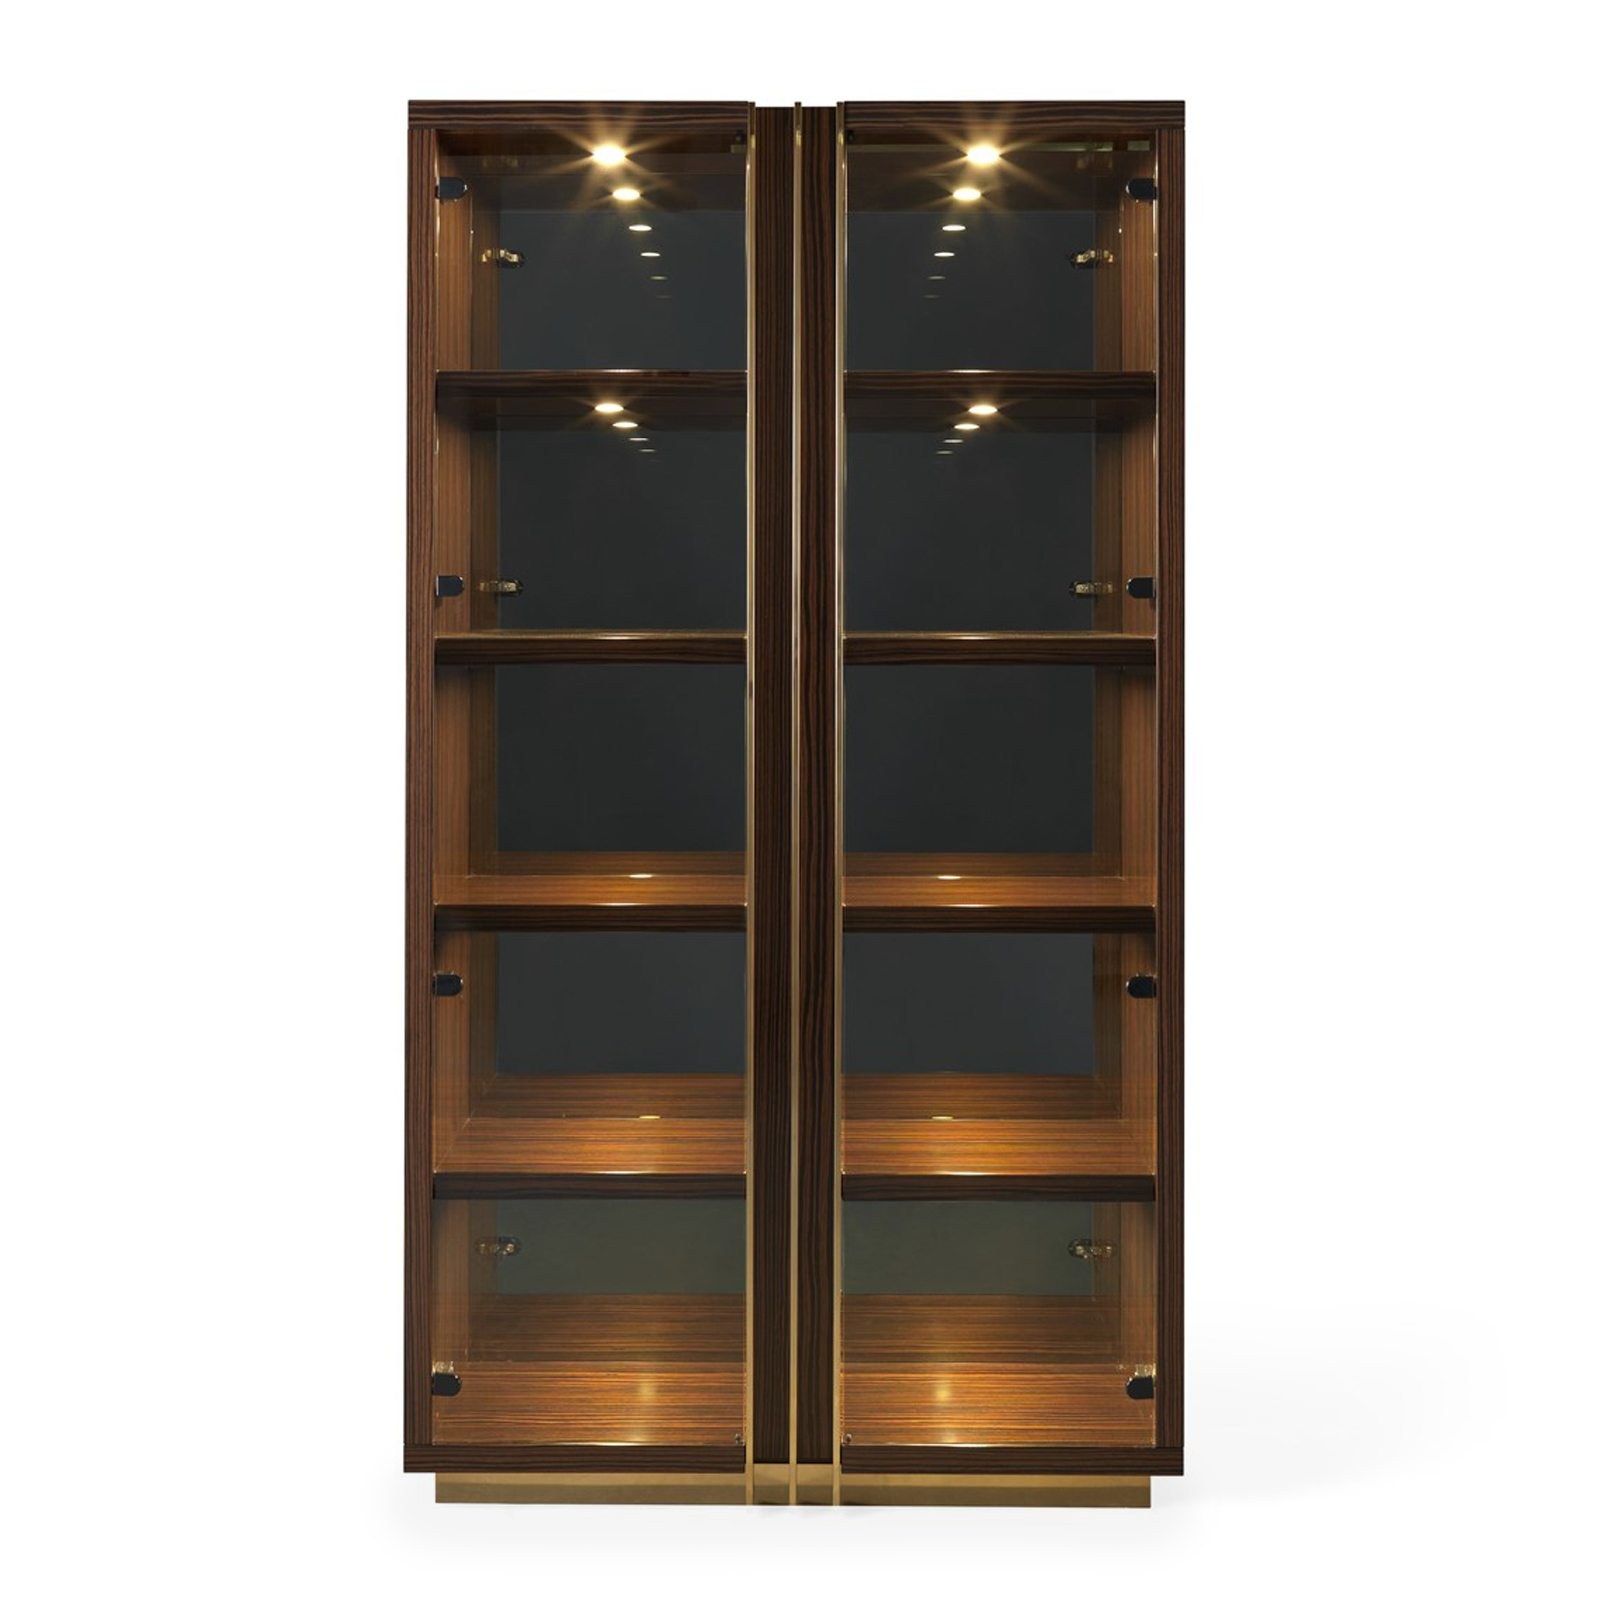 Tribe-Glass-Cabinet-by-Bonham-&-Bonham-02